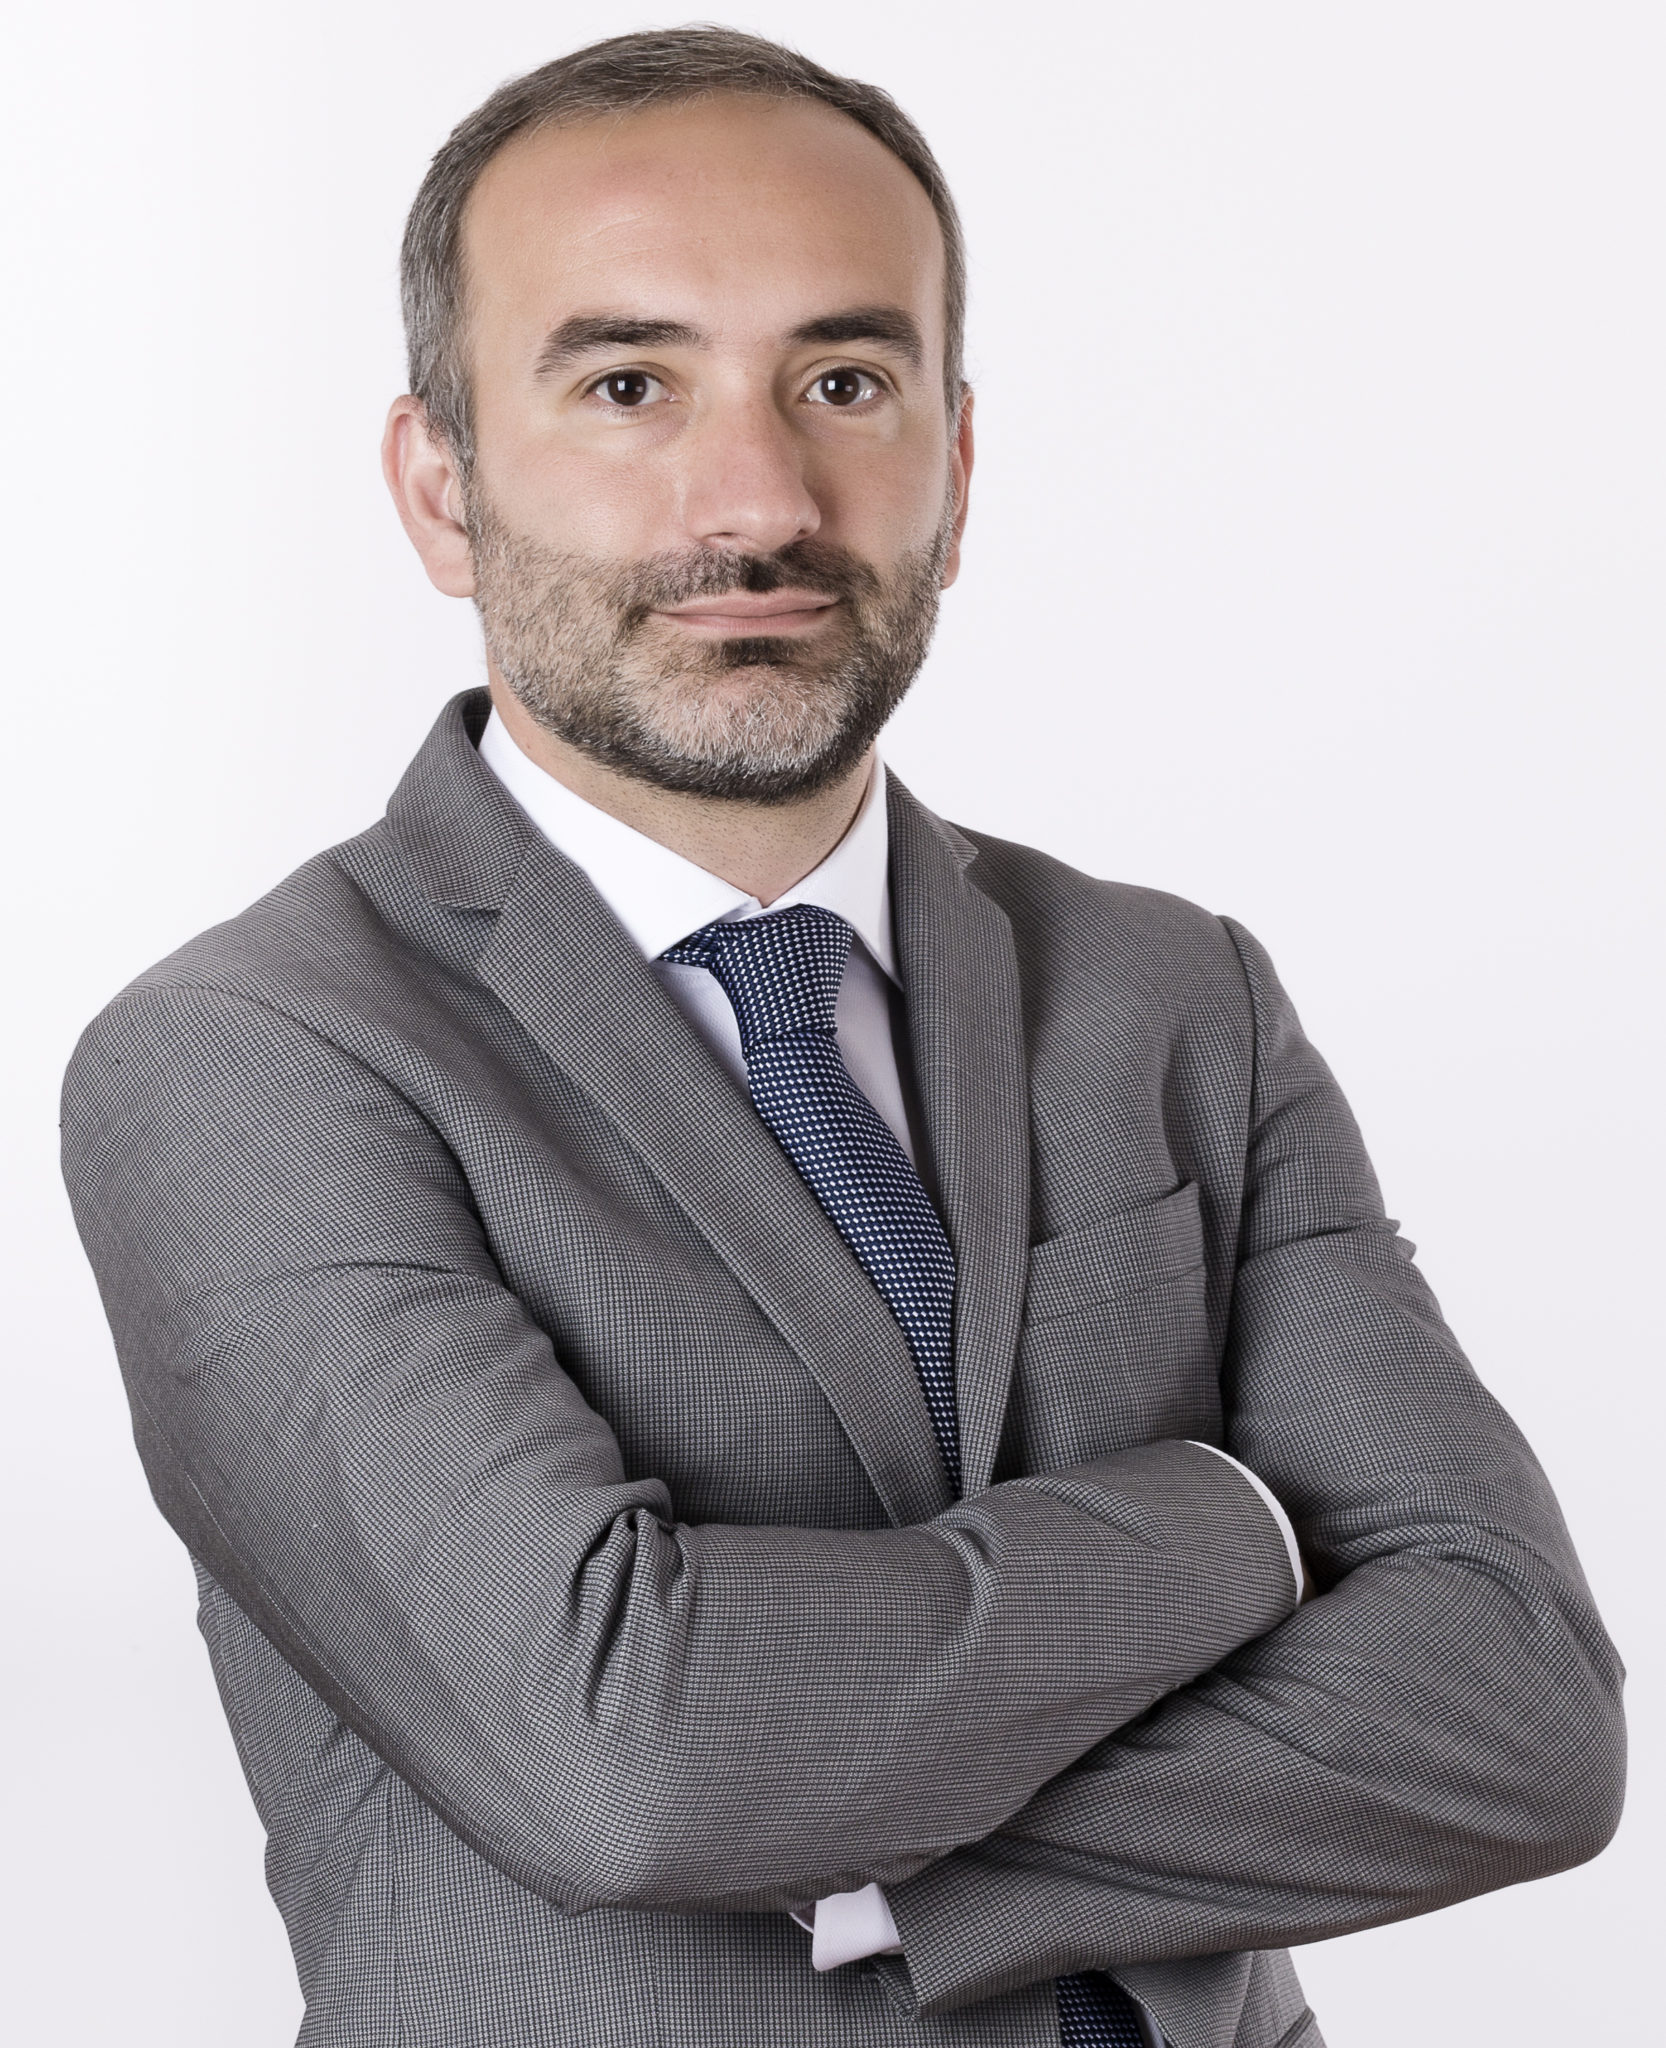 Damiano Spagnuolo, Marketing & Product Manager Knauf Italia